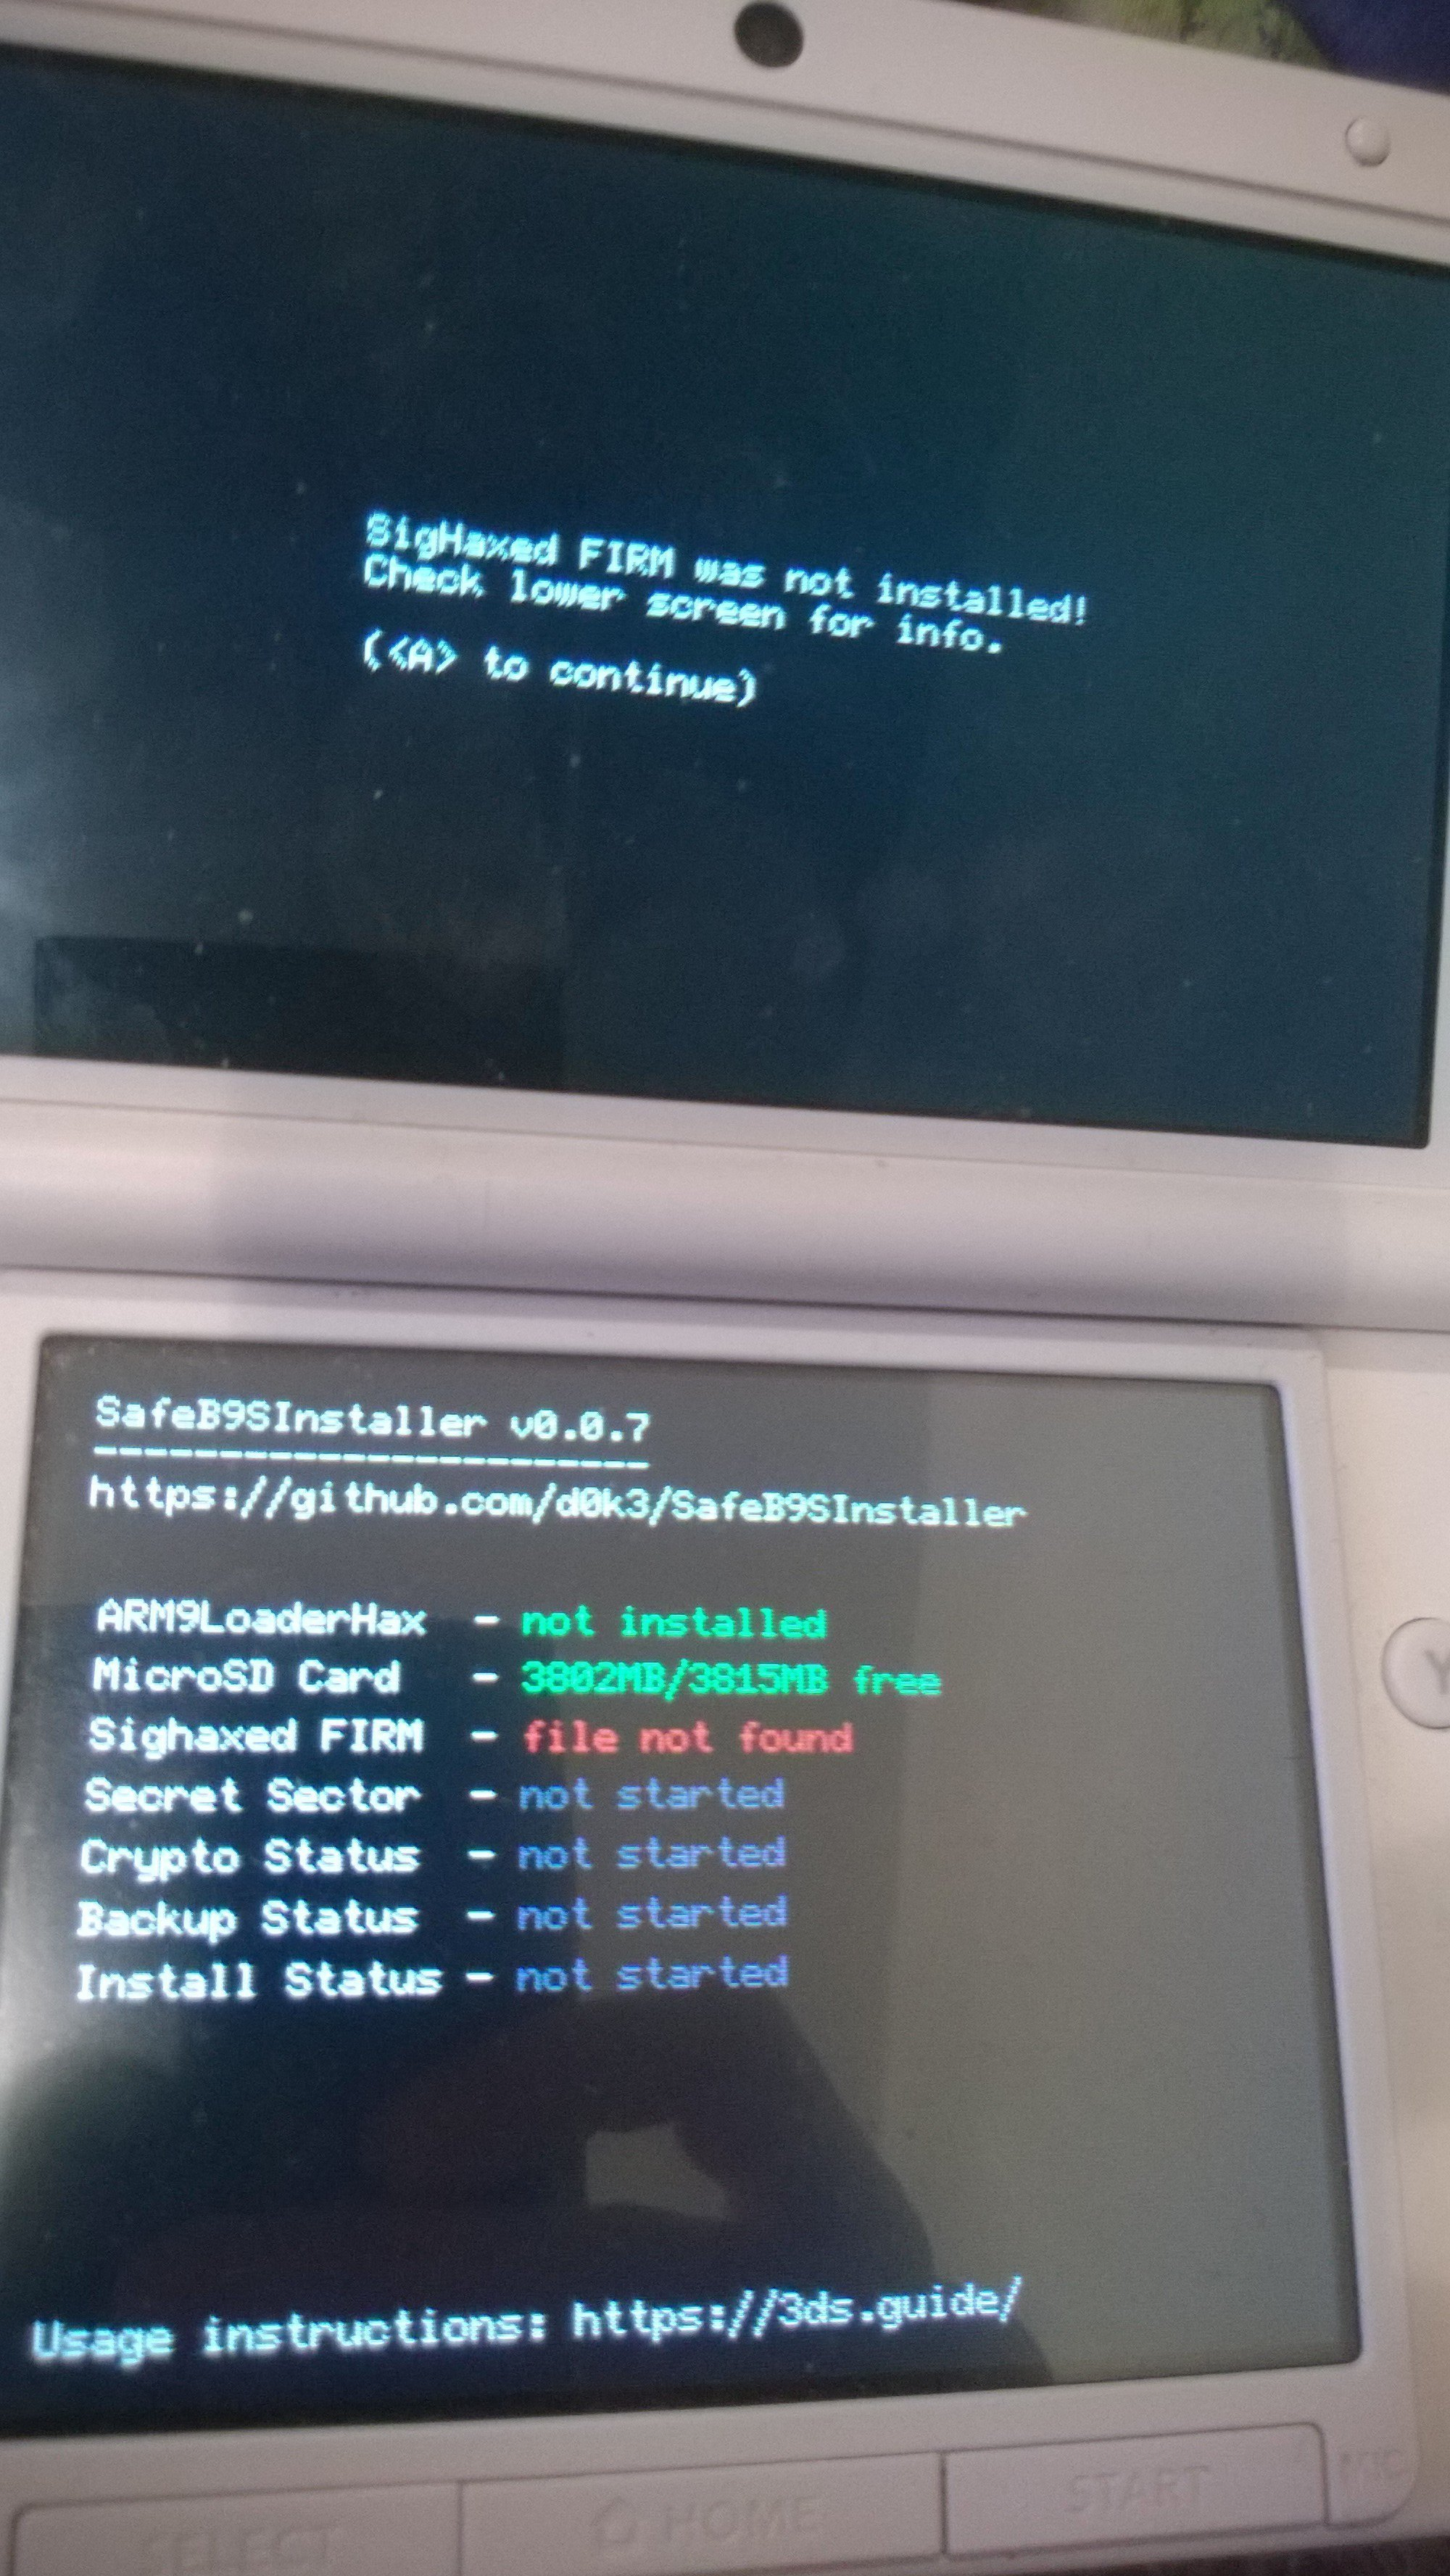 Recover a O3DS with Magnet, Flashcard, SigHax -> SysNAND